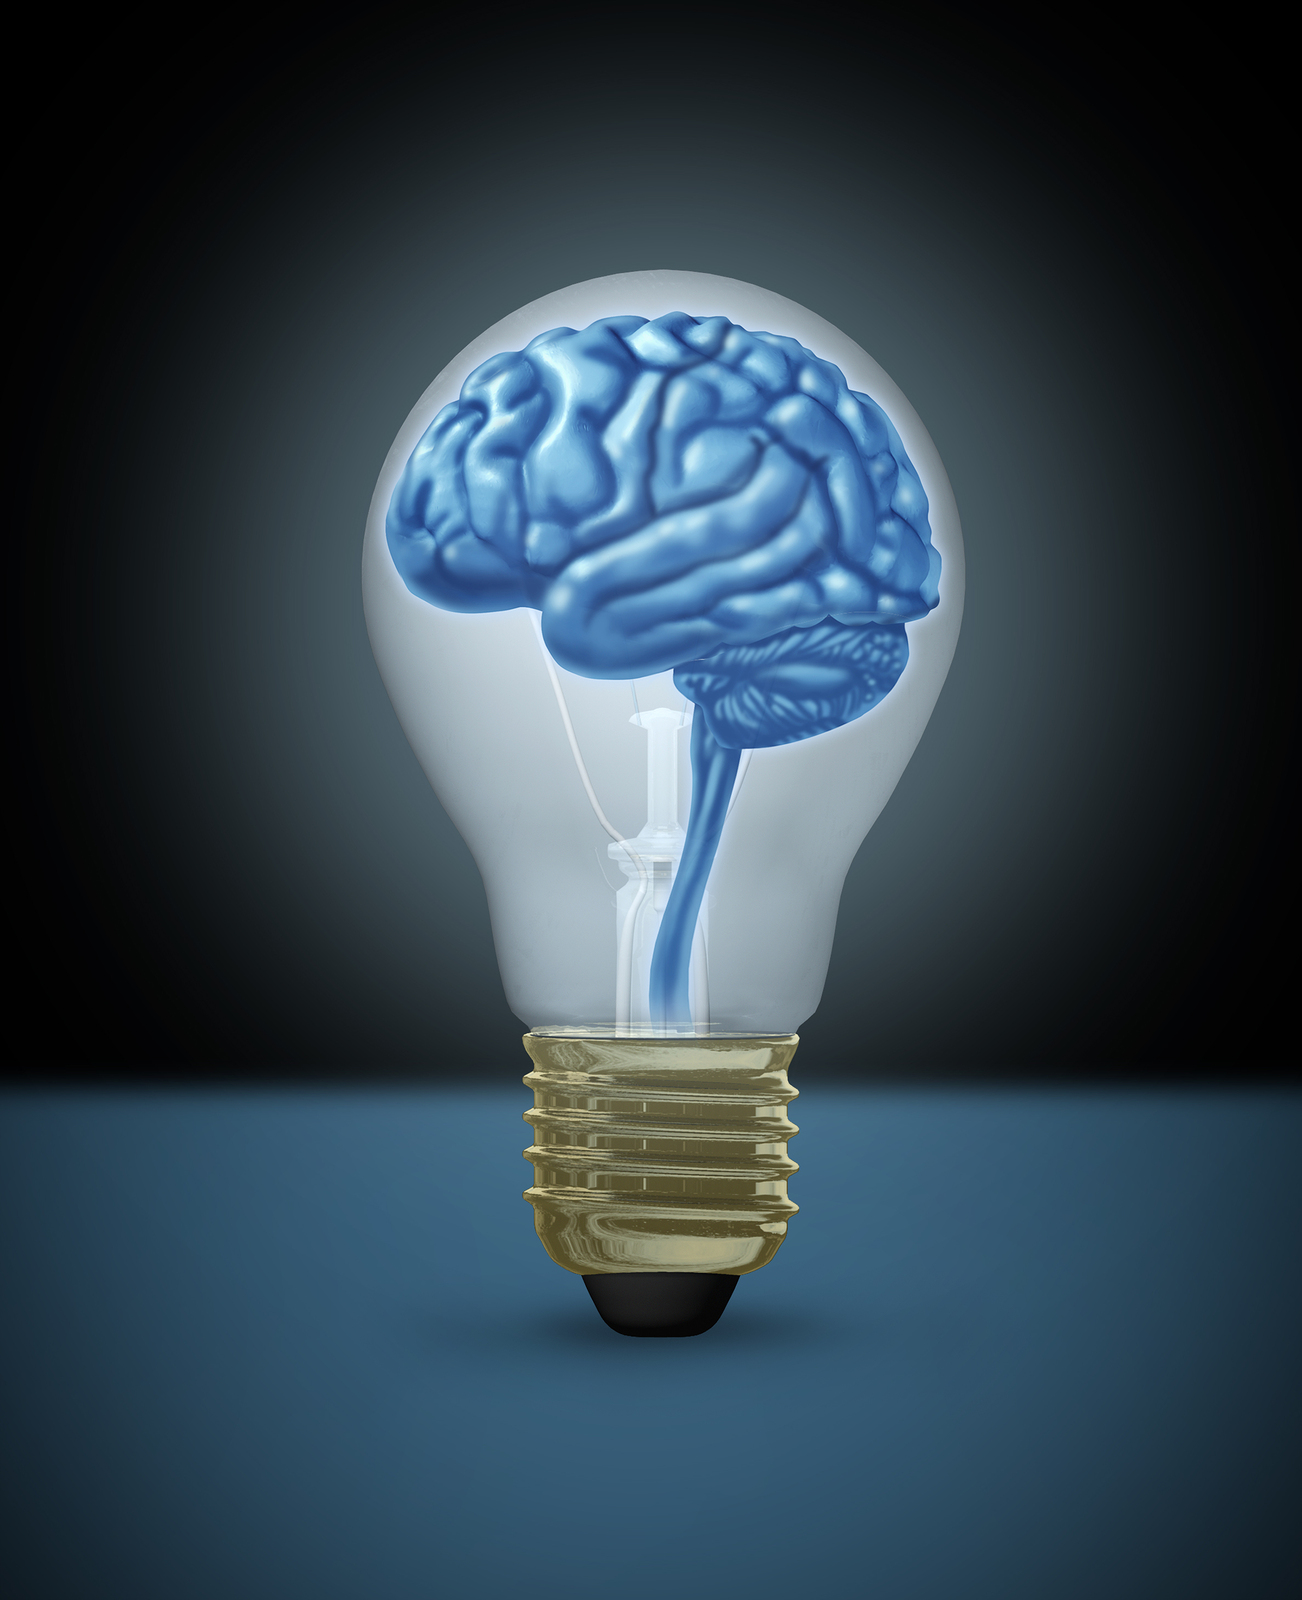 Light Bulb With A Brain Inside Of It